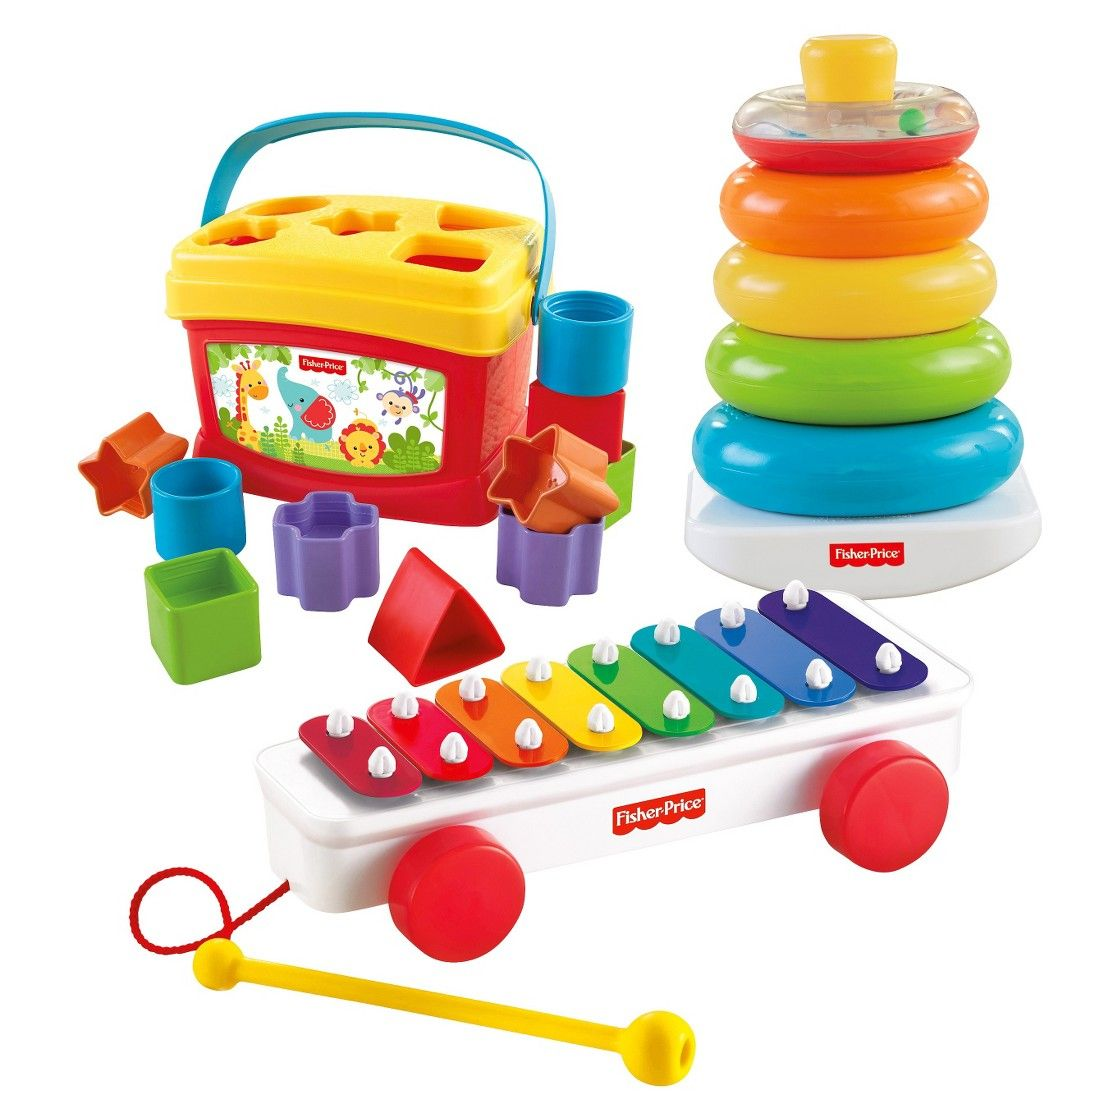 FisherPrice Classic Infant Trio Gift Set Baby gift sets